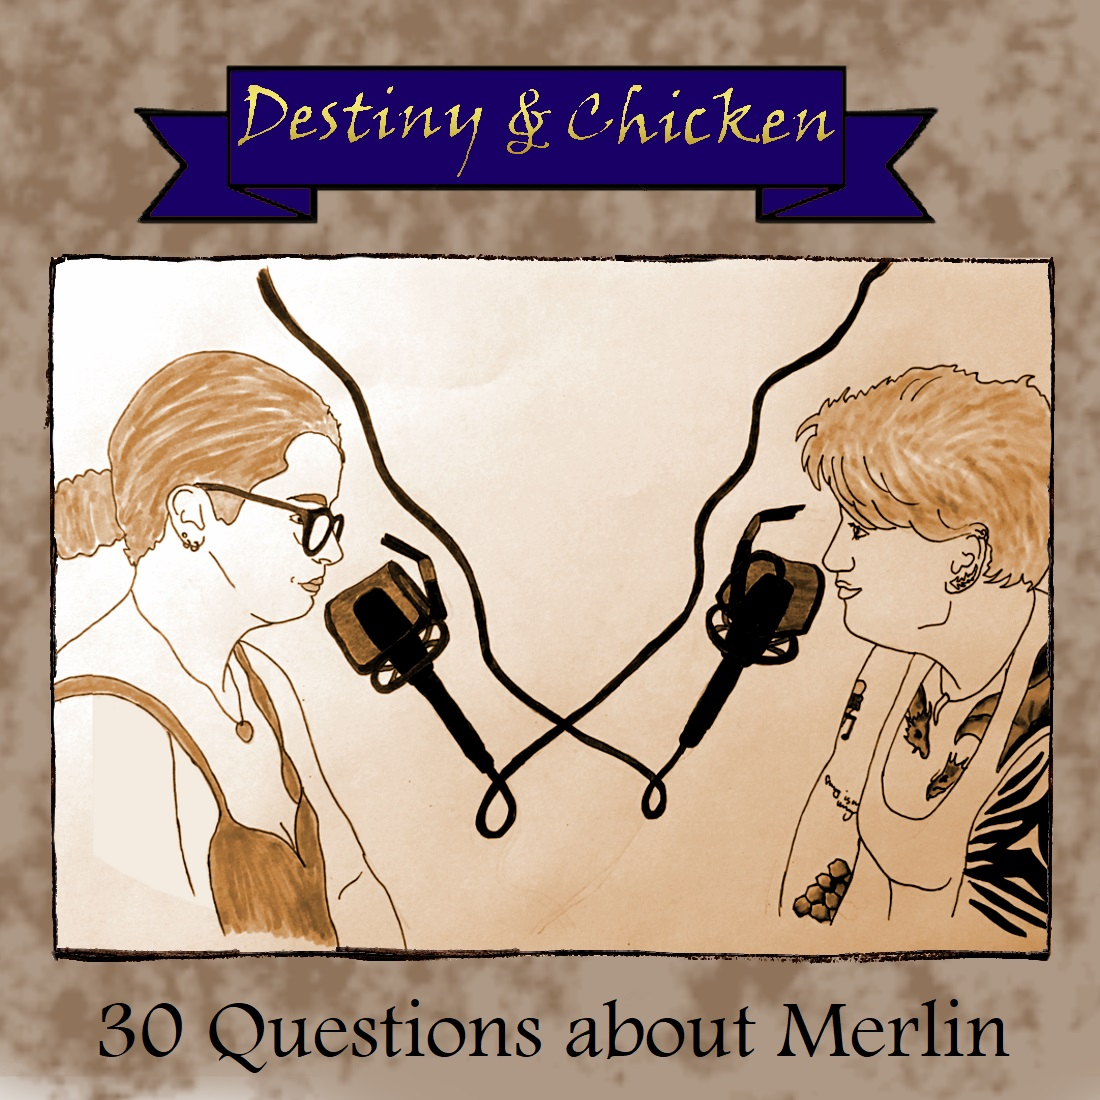 30 Questions about Merlin